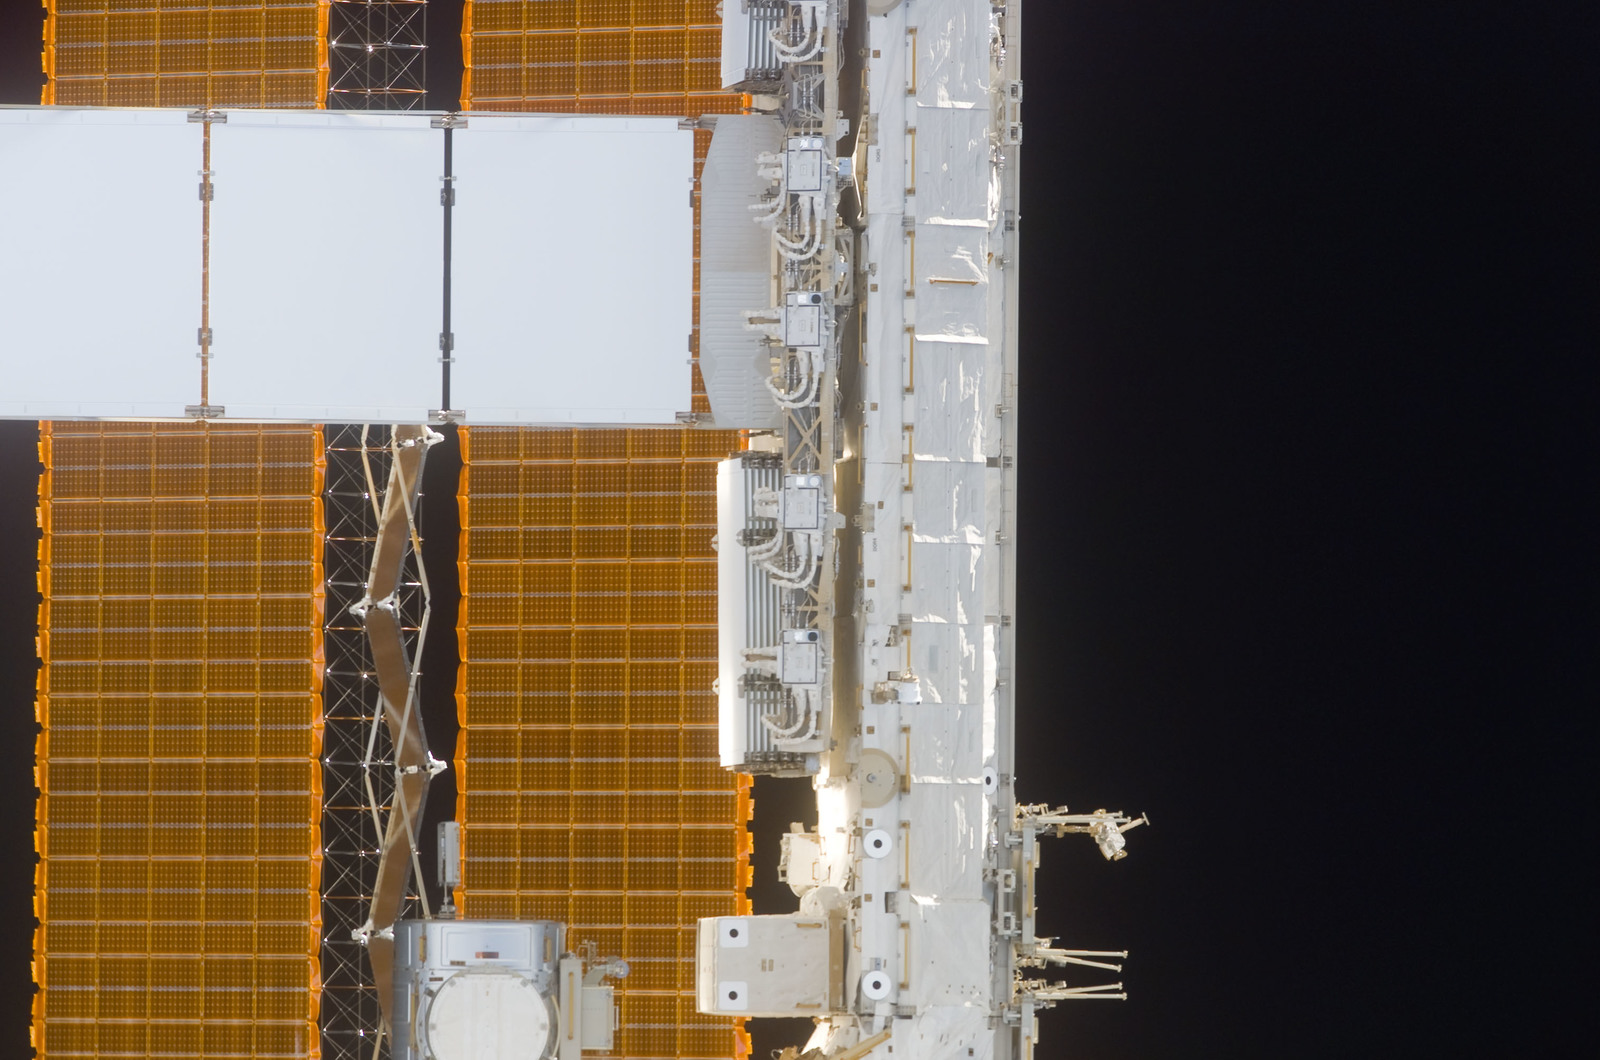 S114E5379 - STS-114 - Set of P6 / Photovoltaic Solar Arrays (SA),and S1 truss